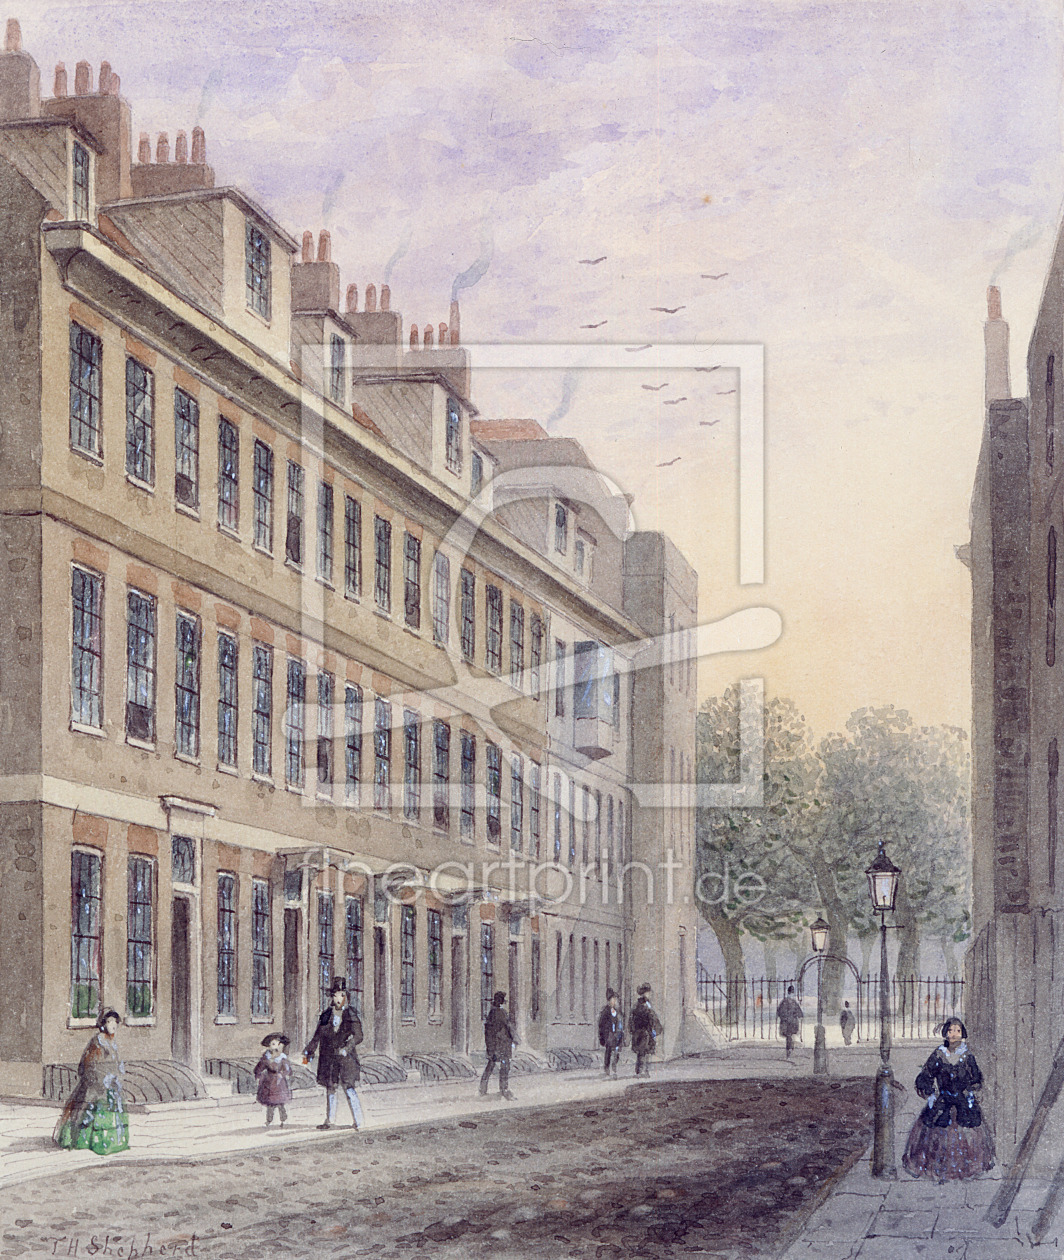 Bild-Nr.: 31002468 View of Fludyer Street, looking towards St. James's Park, 1859 erstellt von Shepherd, Thomas Hosmer